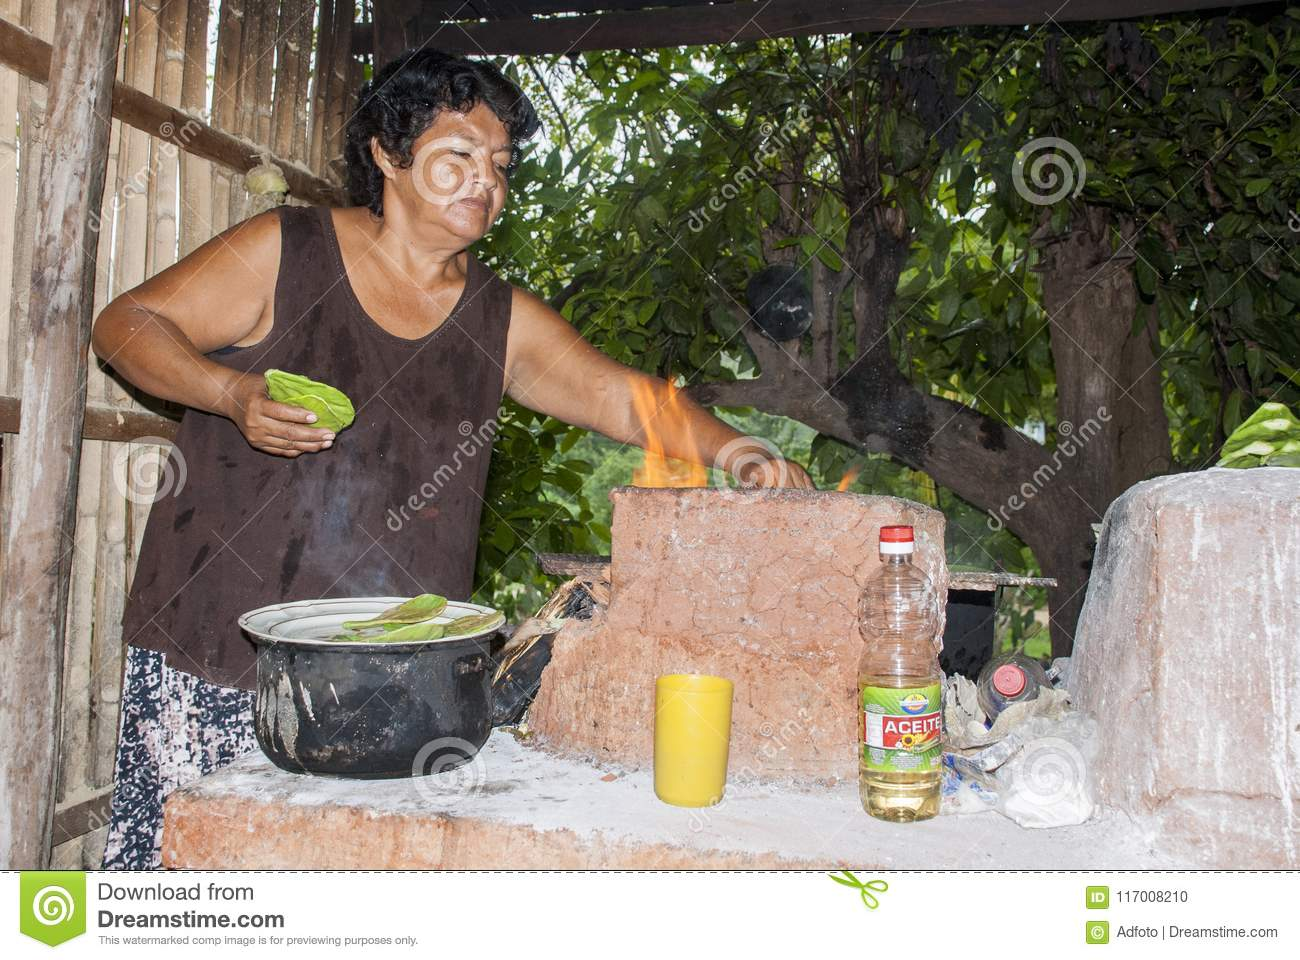 The Tried and True Way of Mexican Bride In Step-by-step Detail old mexican lady cooking prickly pear cactus traditional way food september huatulco mexico 117008210